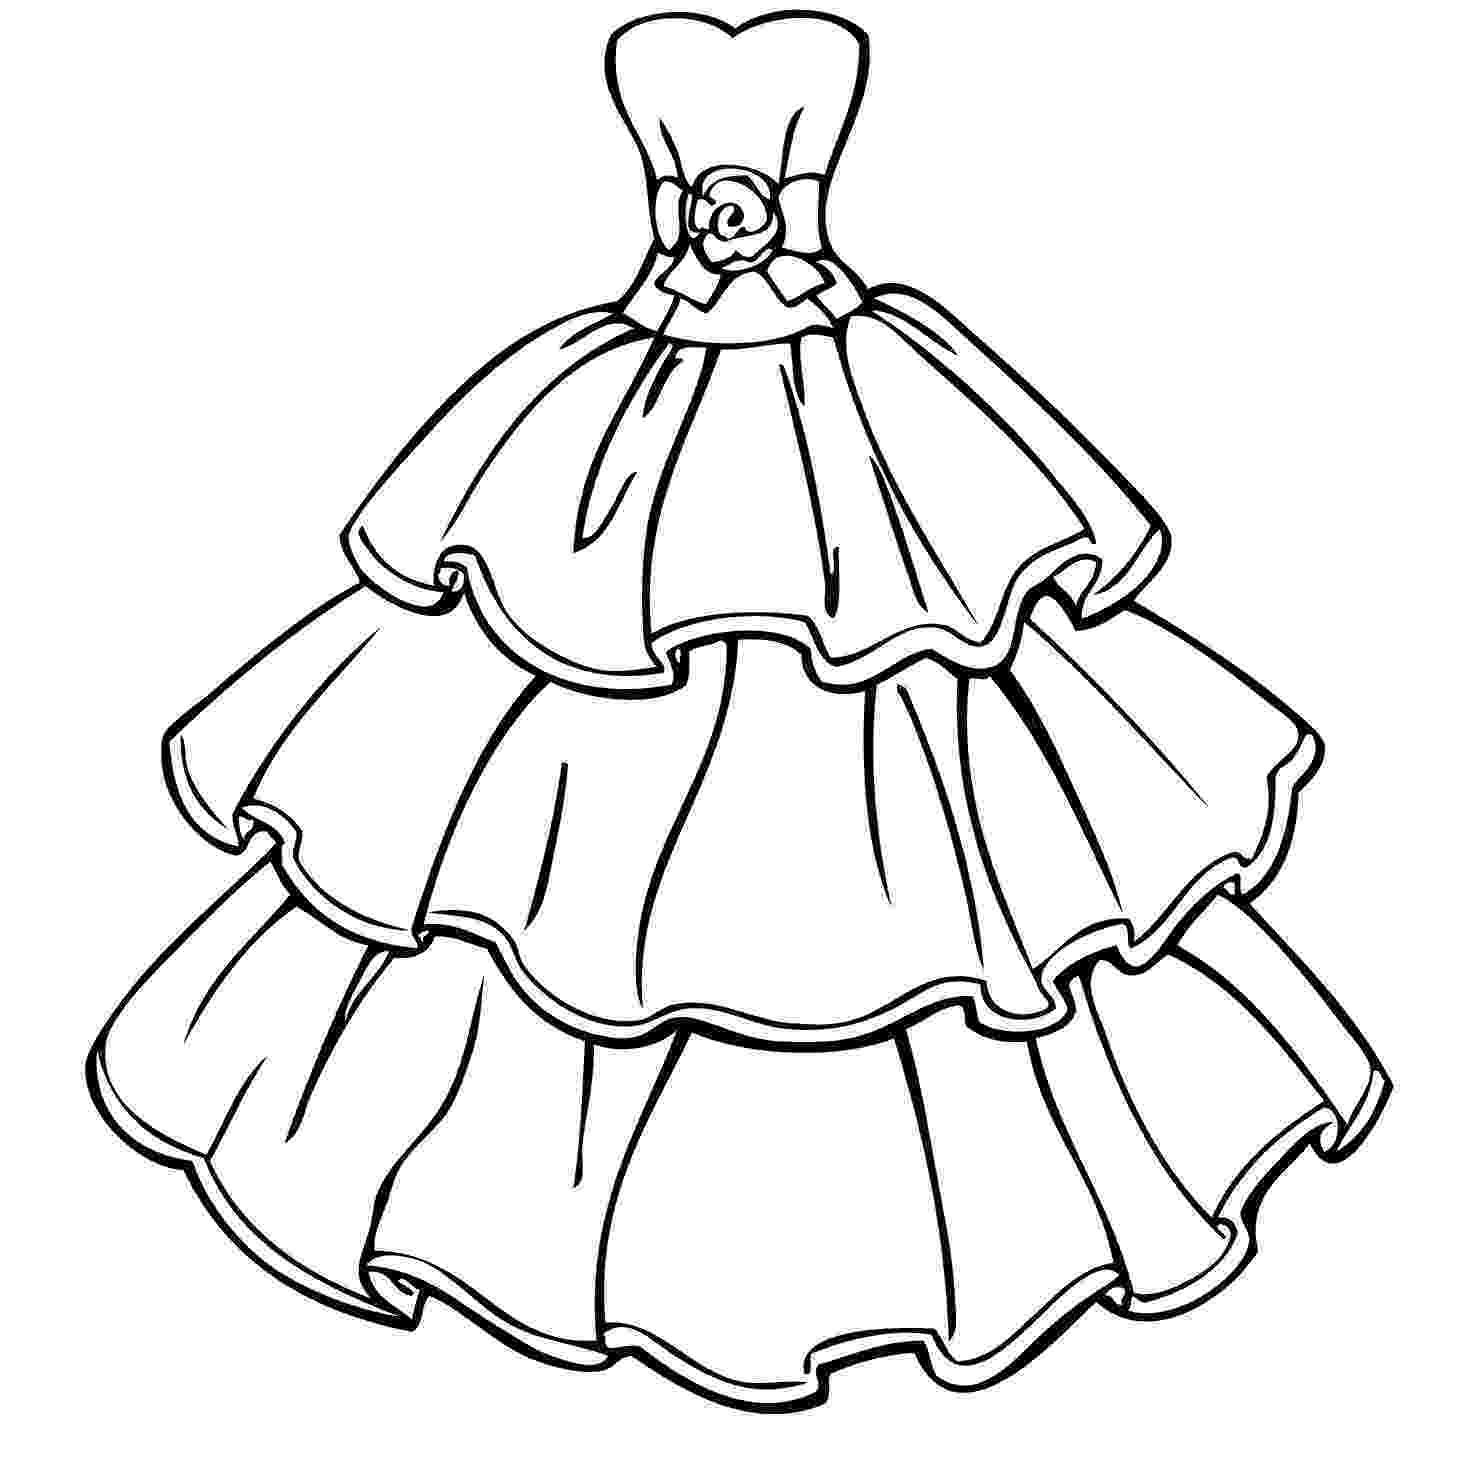 picture of a girl to color free printable baby coloring pages for kids color girl a to picture of